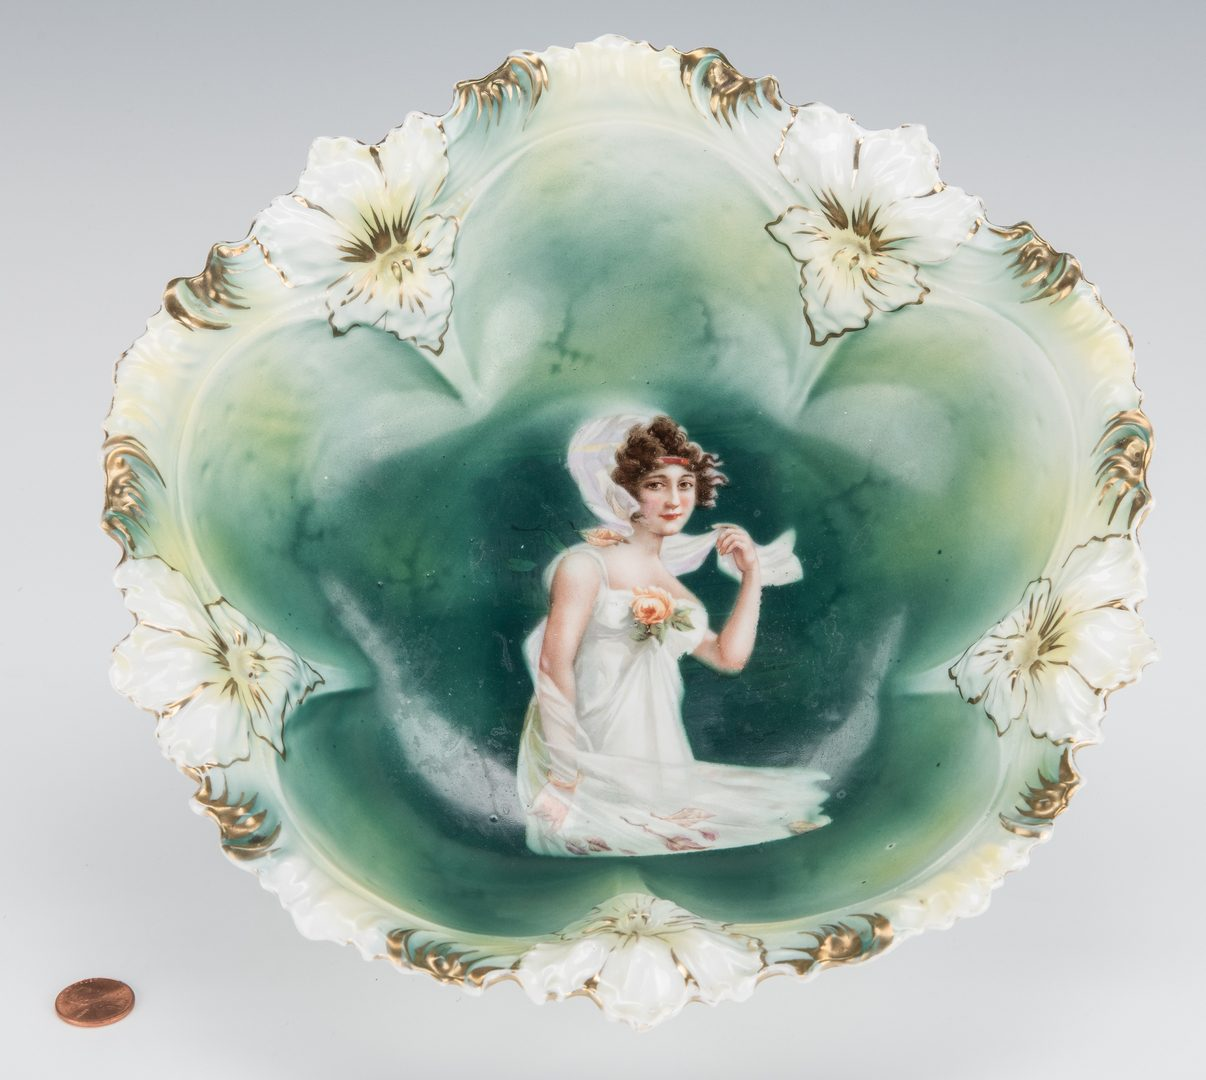 Lot 362: RS Prussia portrait bowl, Autumn